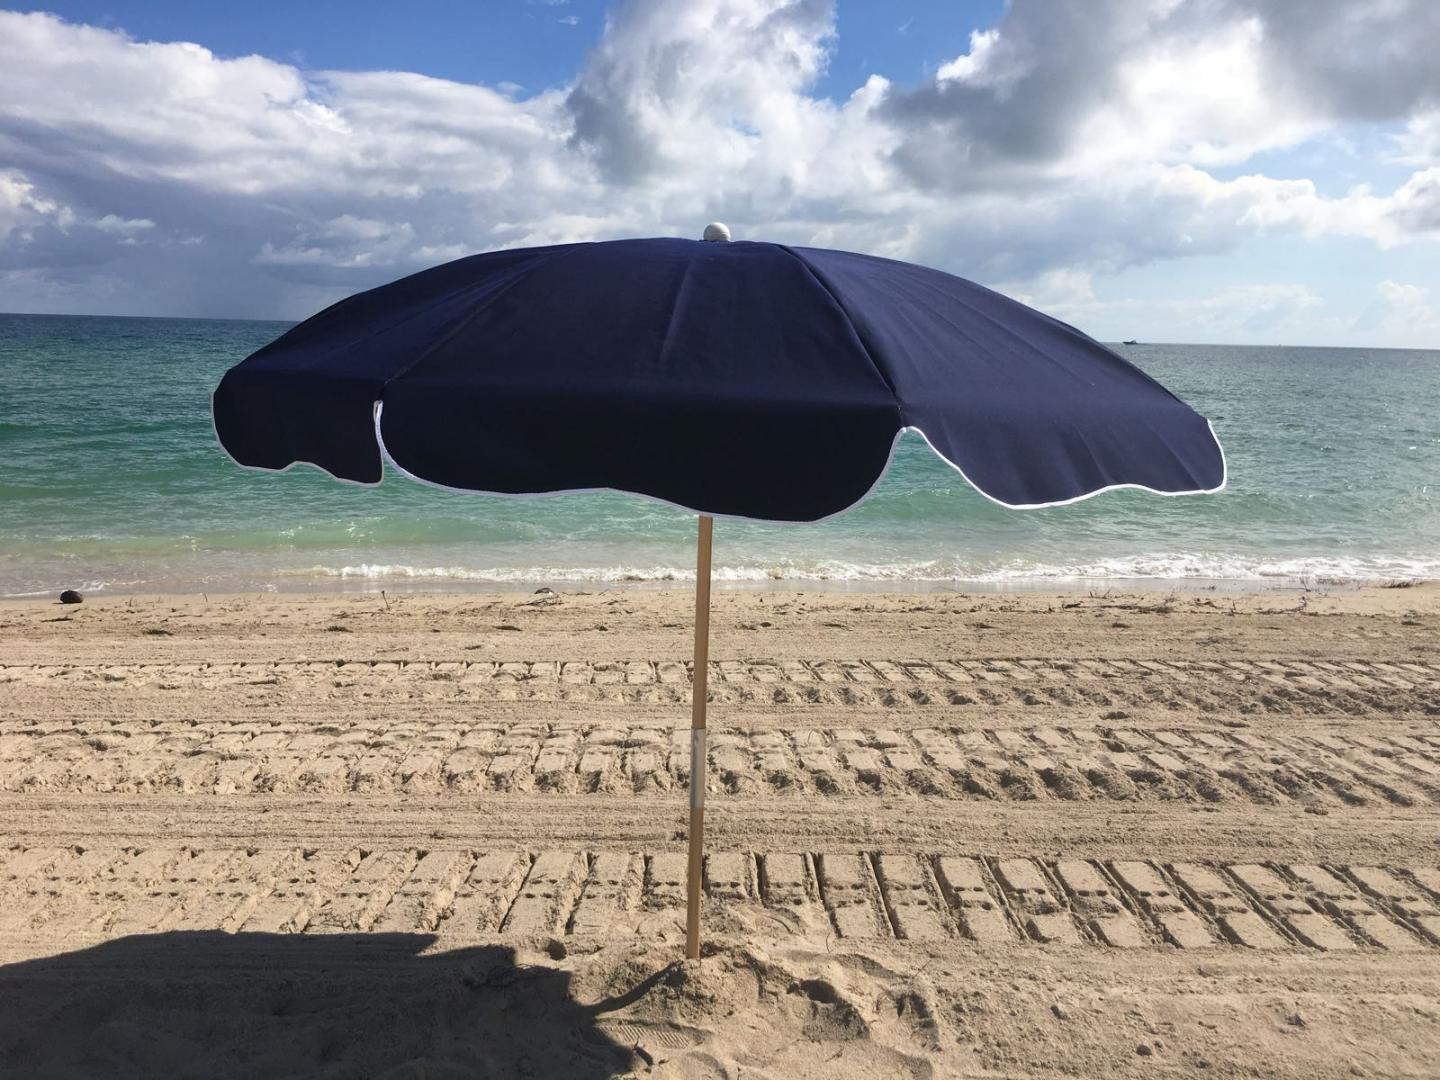 Beach Umbrella 7.50 Ft by 8 Ribs, Push-up,  Steel or Fiberglass Ribs, Canvas, 2 Piece Ash Wood or Aluminum Pole Point (1 Piece Aluminum Point)3